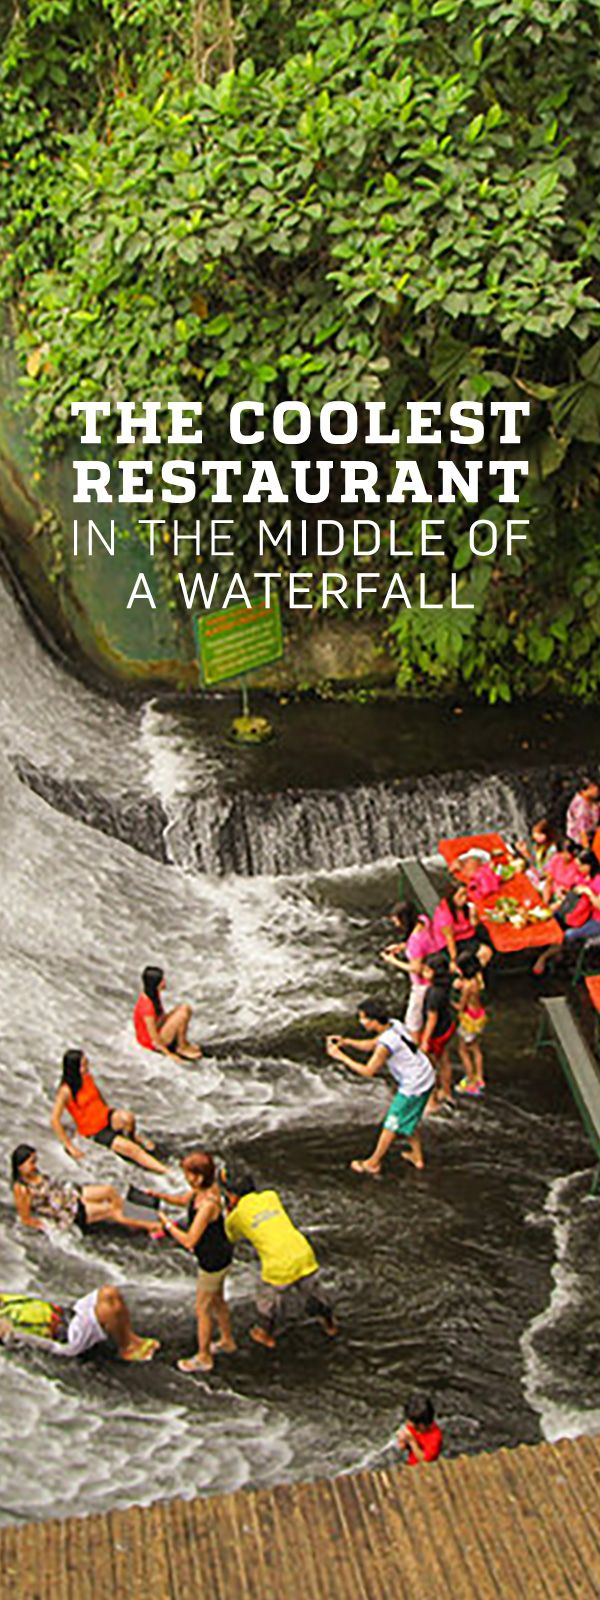 Add this specactular waterfall to your bucket list: the Labassin Waterfall Restaurant, a place in the Philippines where you can eat dinner in the middle of an actual, literal, real-life waterfall.